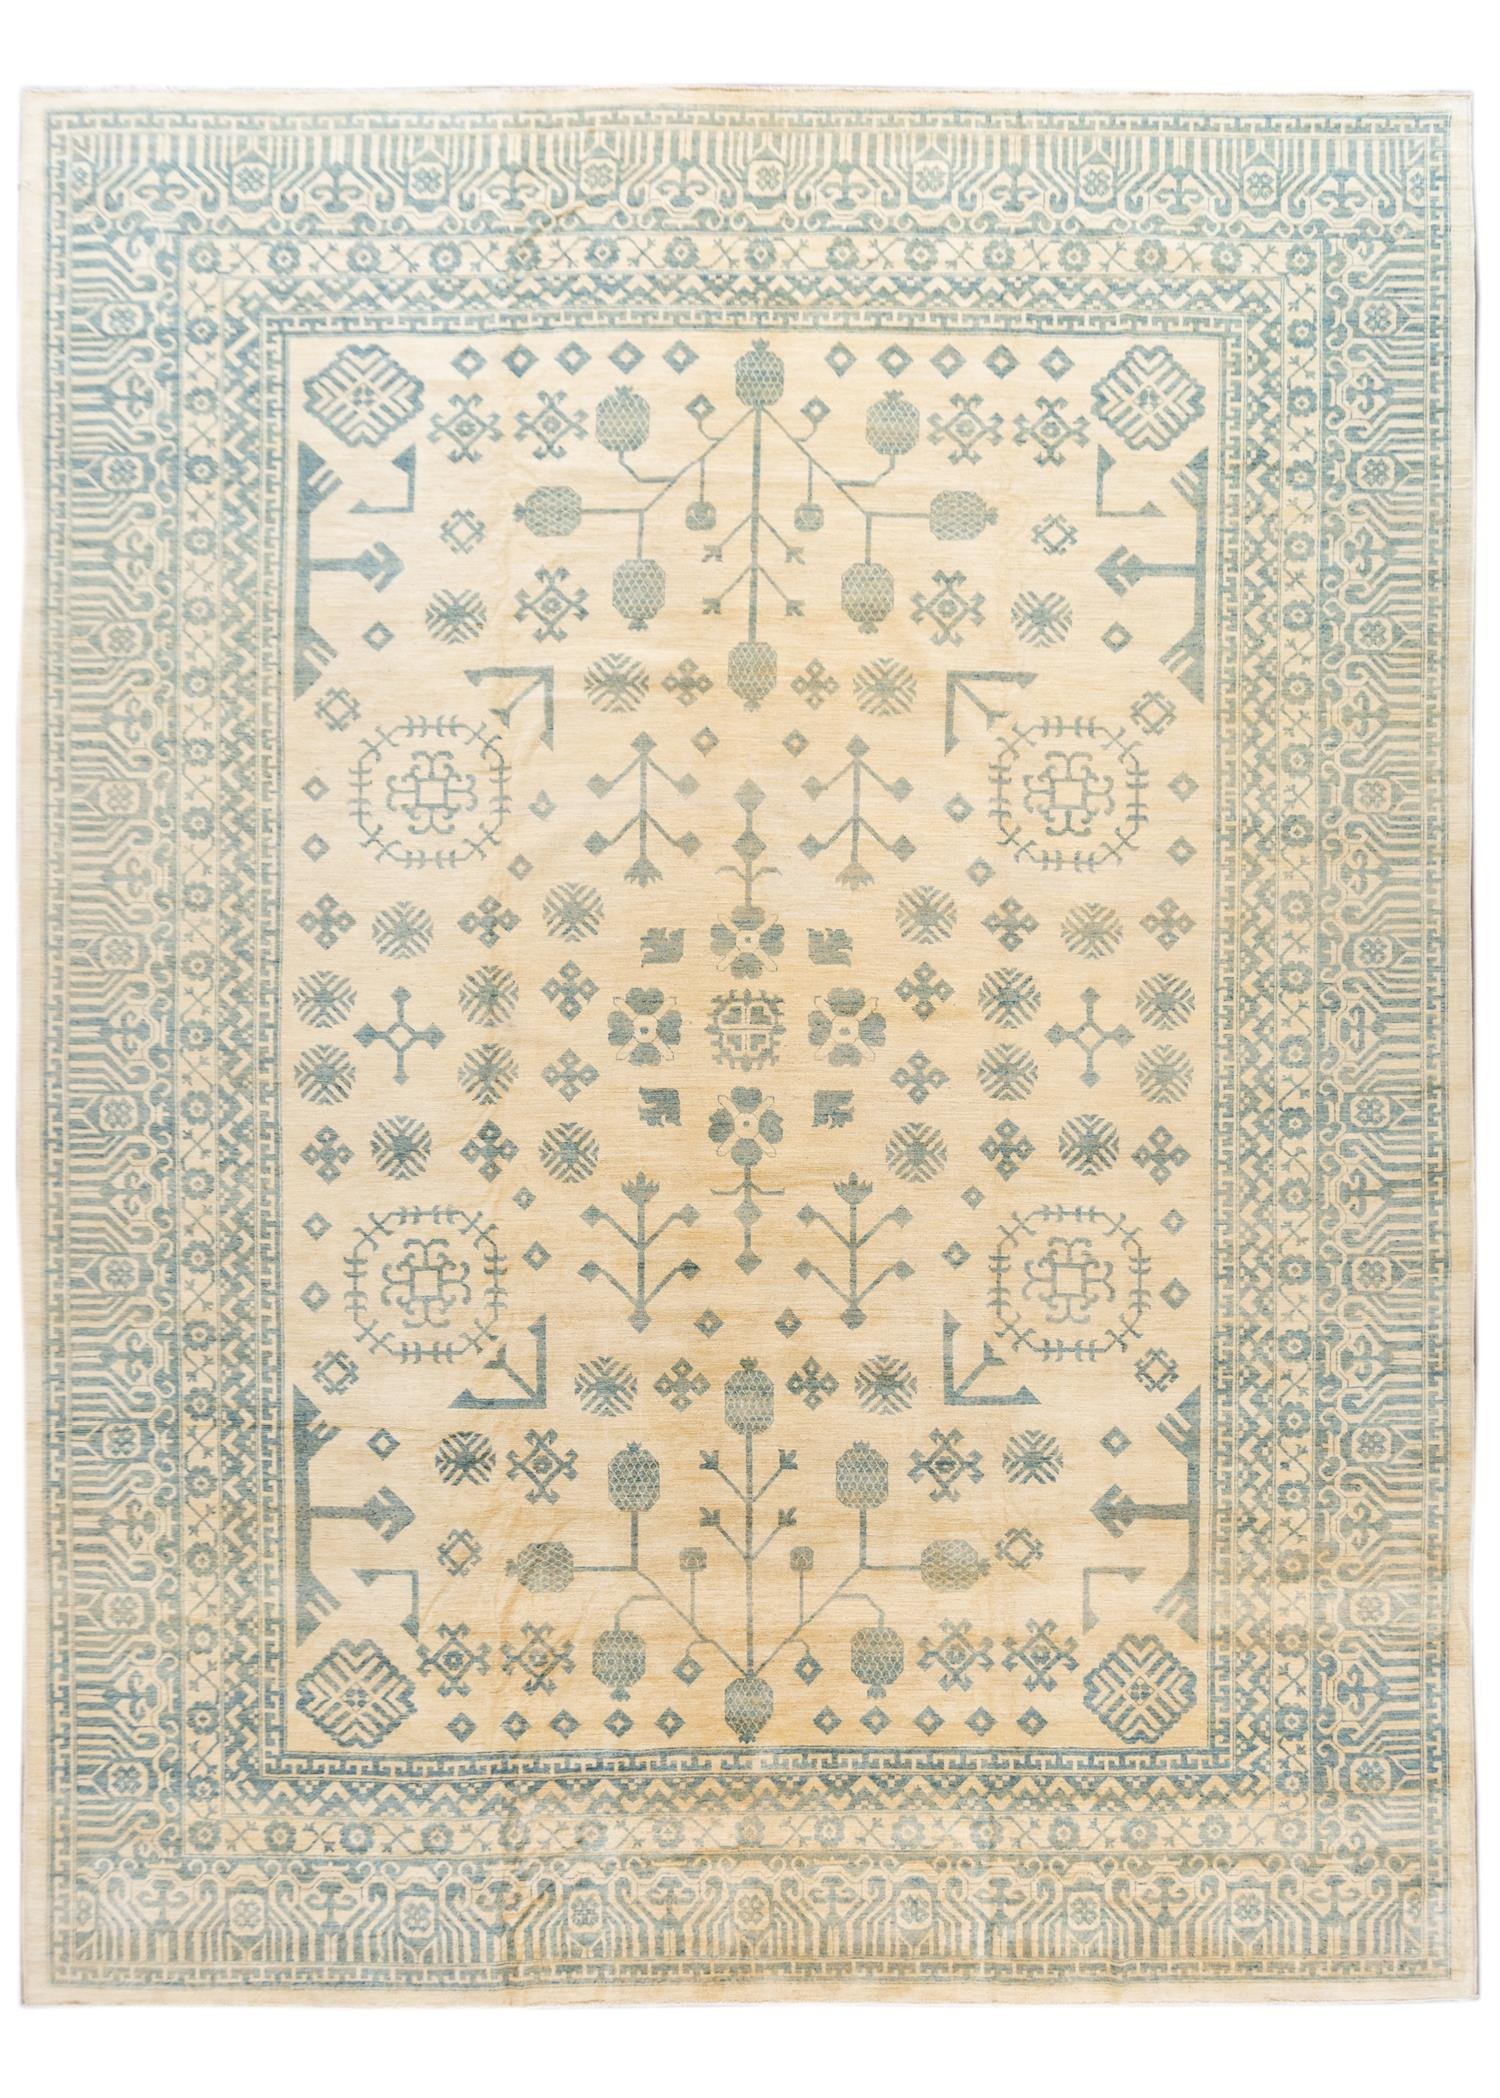 Contemporary Oversize Ivory and Blue Khotan-Style Wool Area Rug 13' x 18'